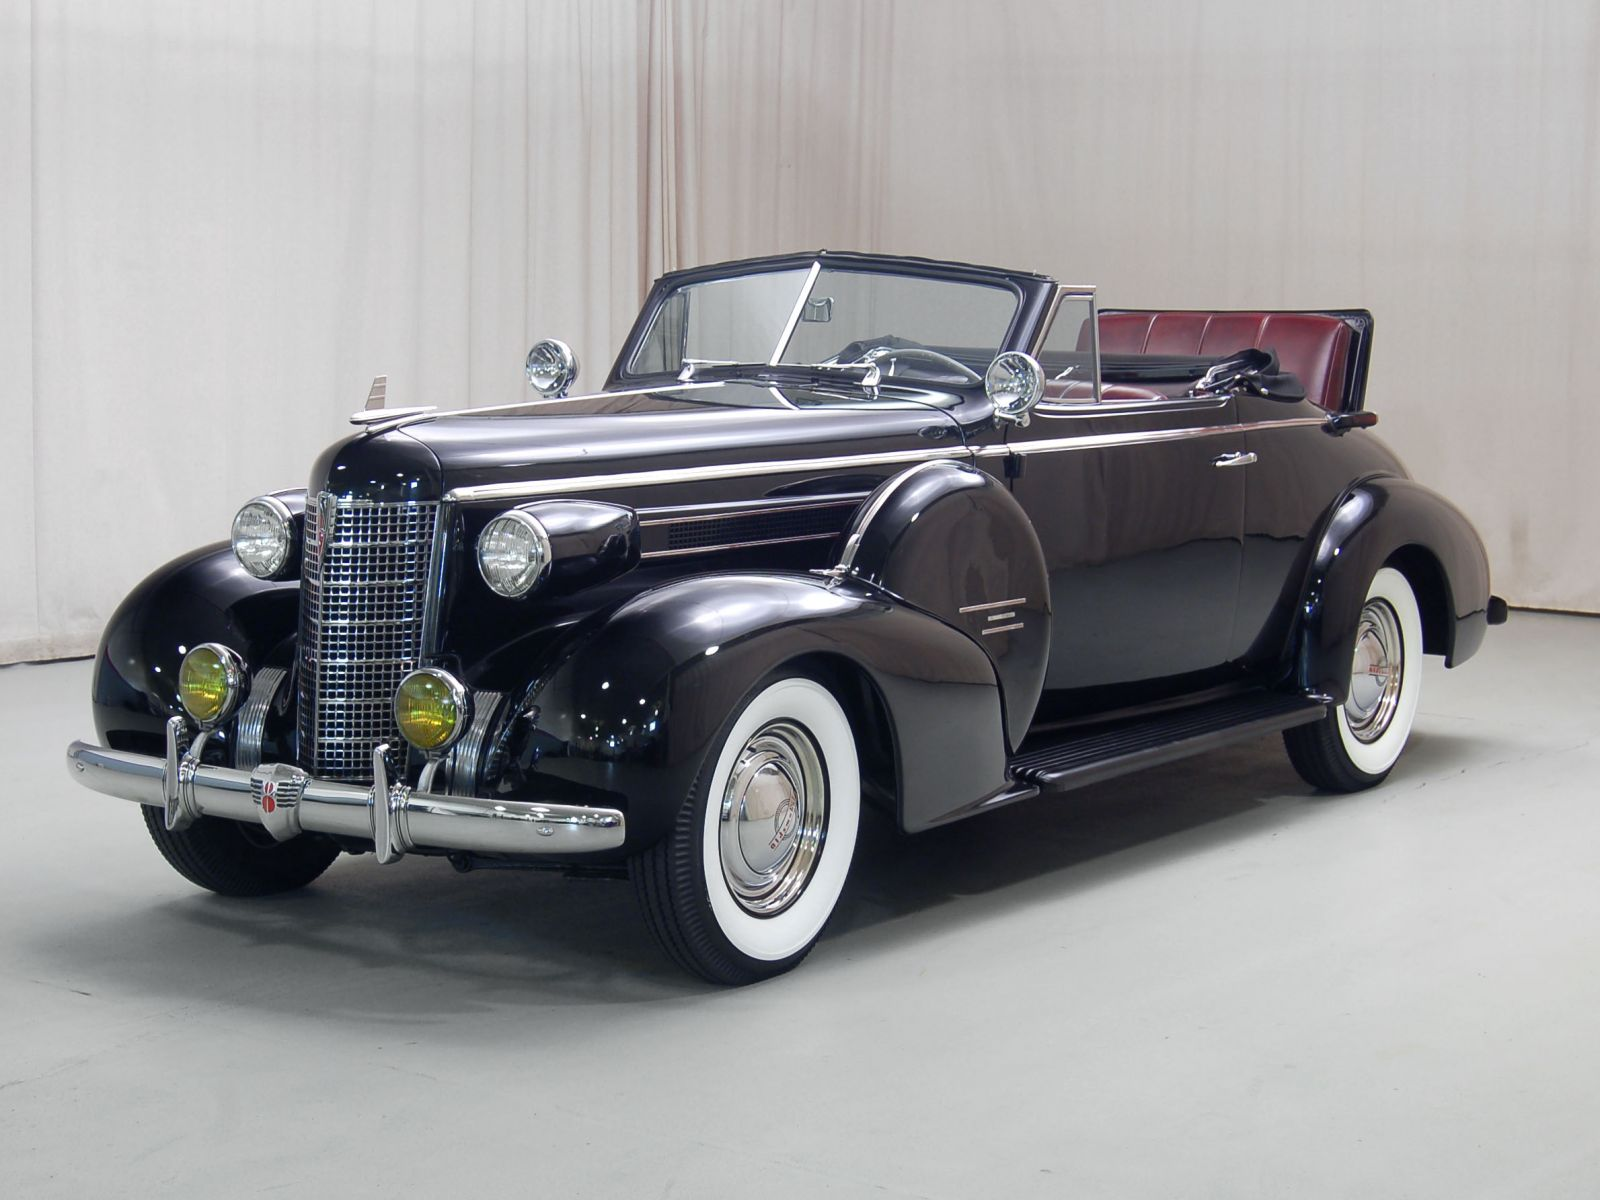 American Buyers Of Classic Cars